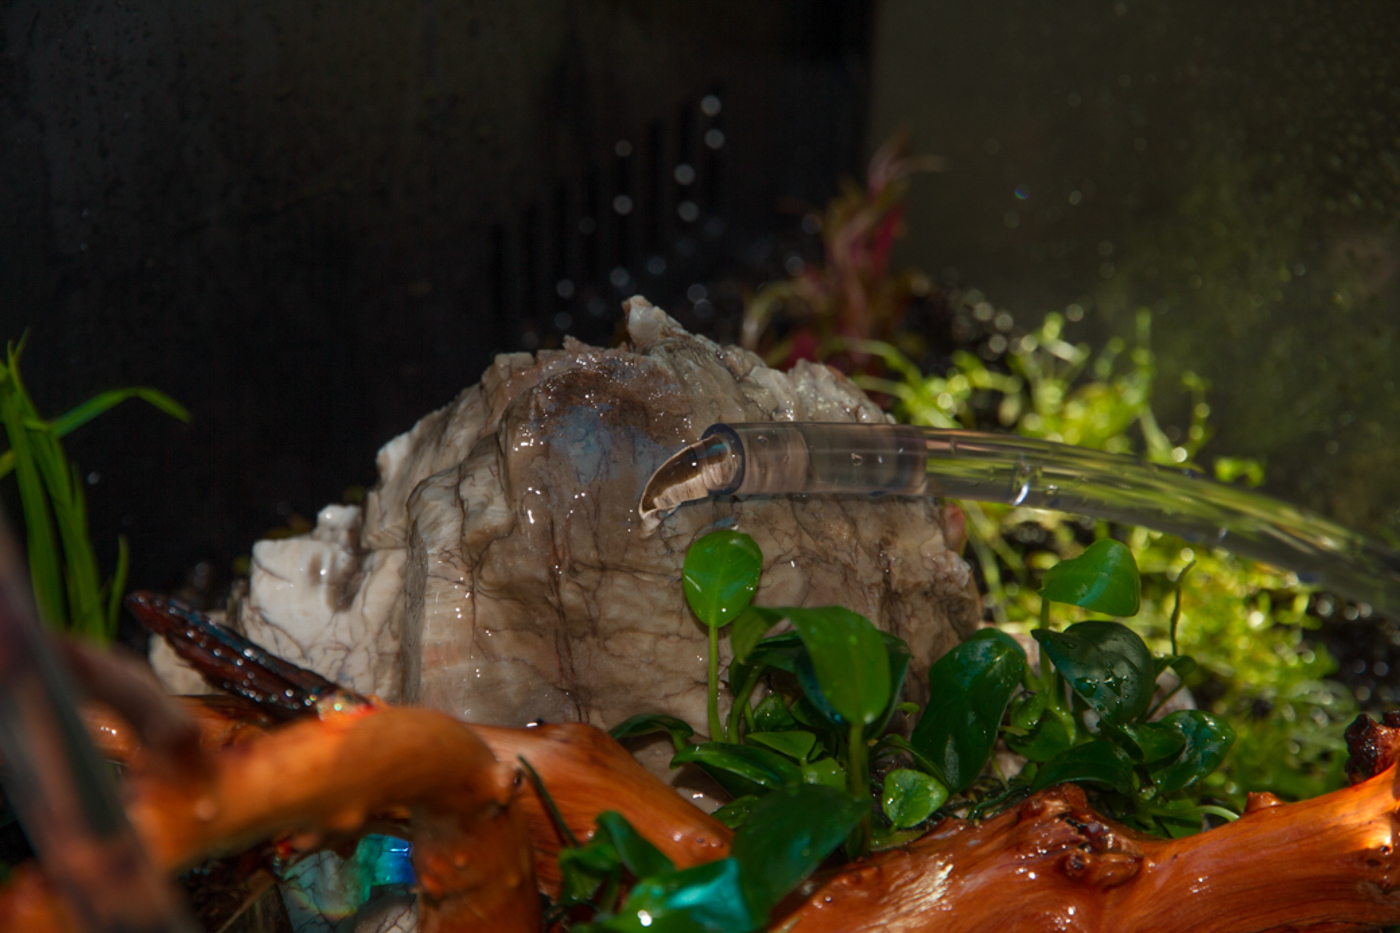 I made sure that the water flowed gently over the rock before hitting the substrate.